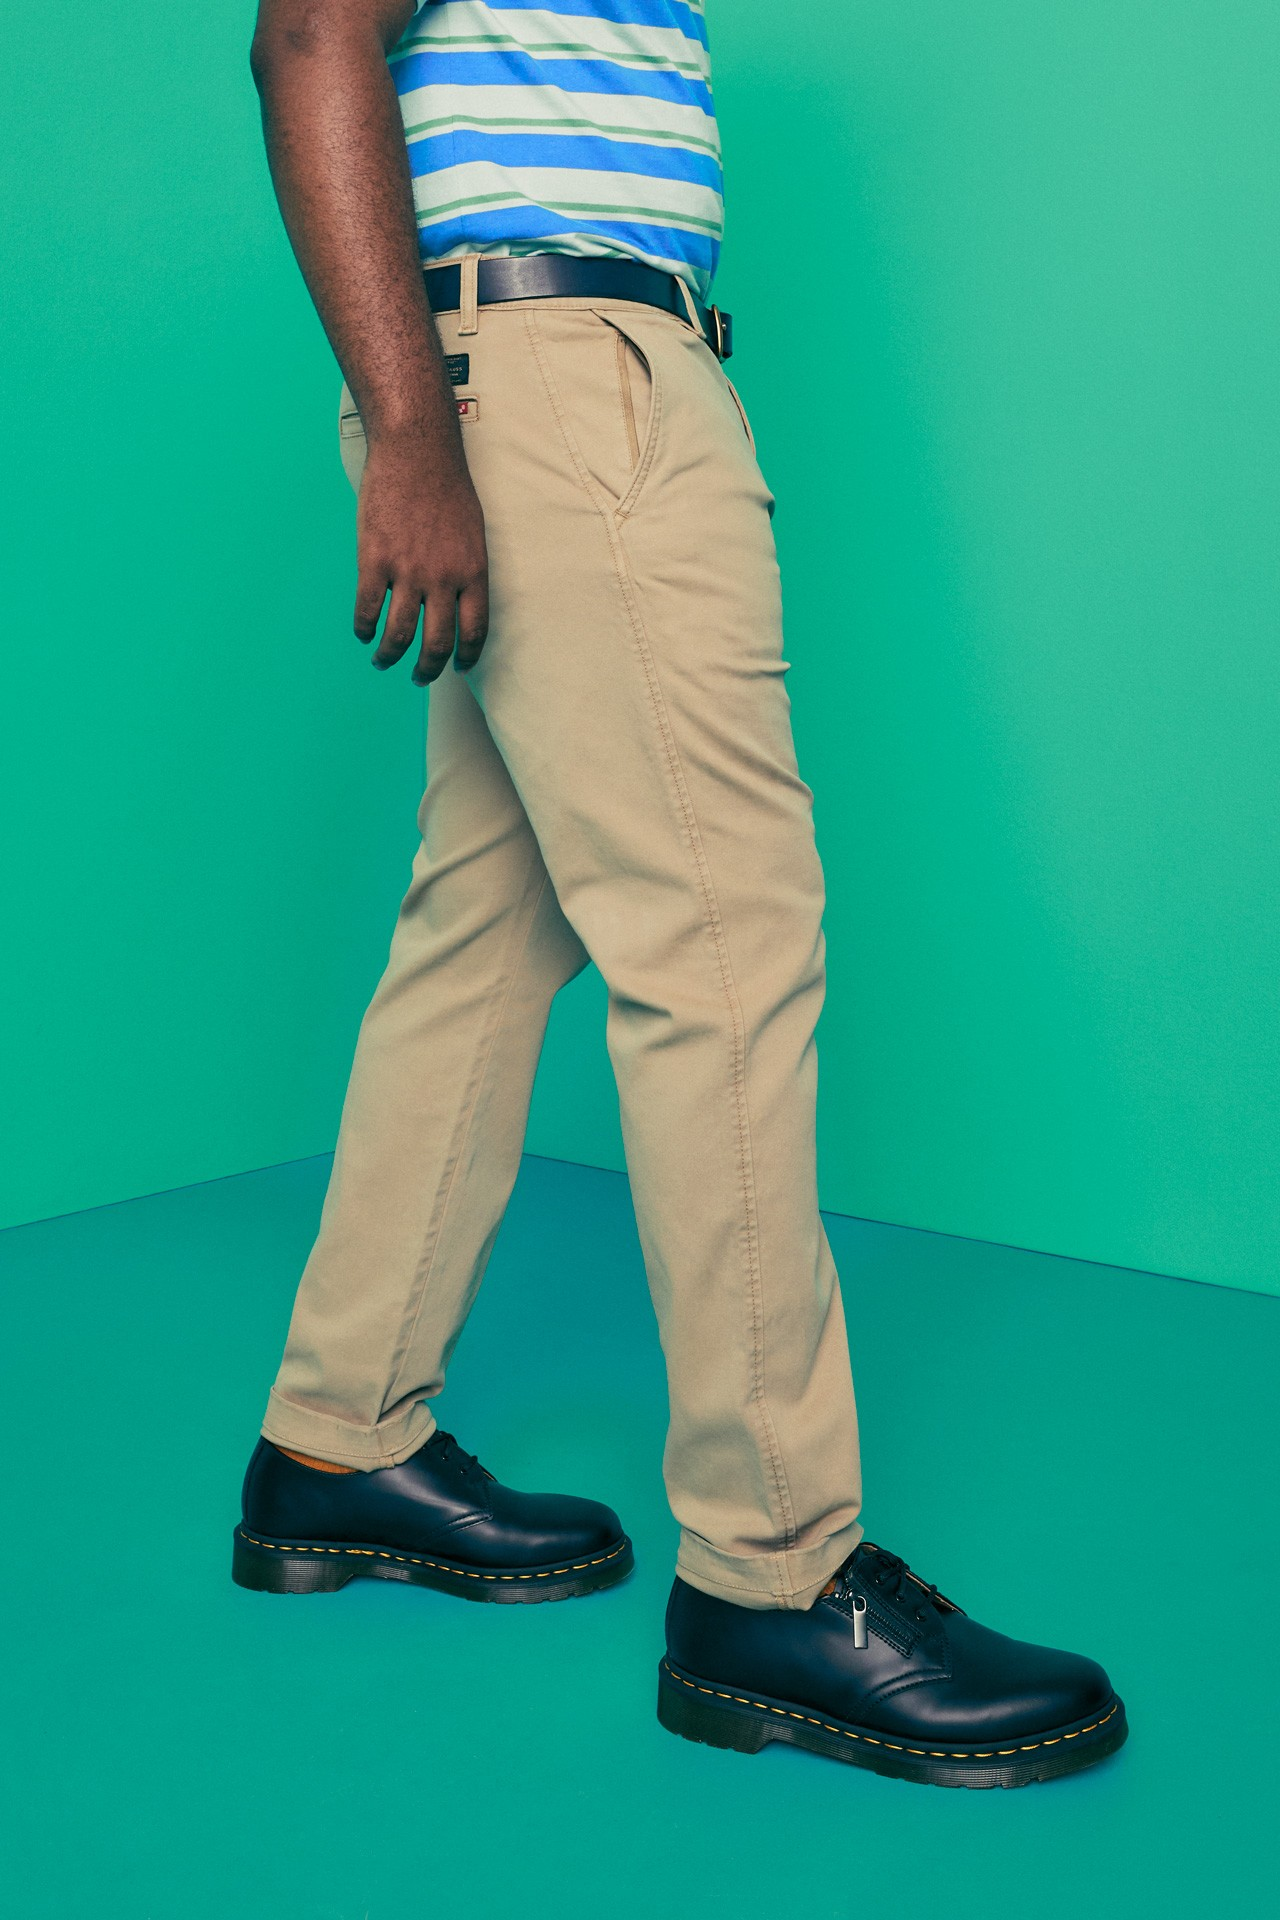 View Levis Black Chinos Pictures